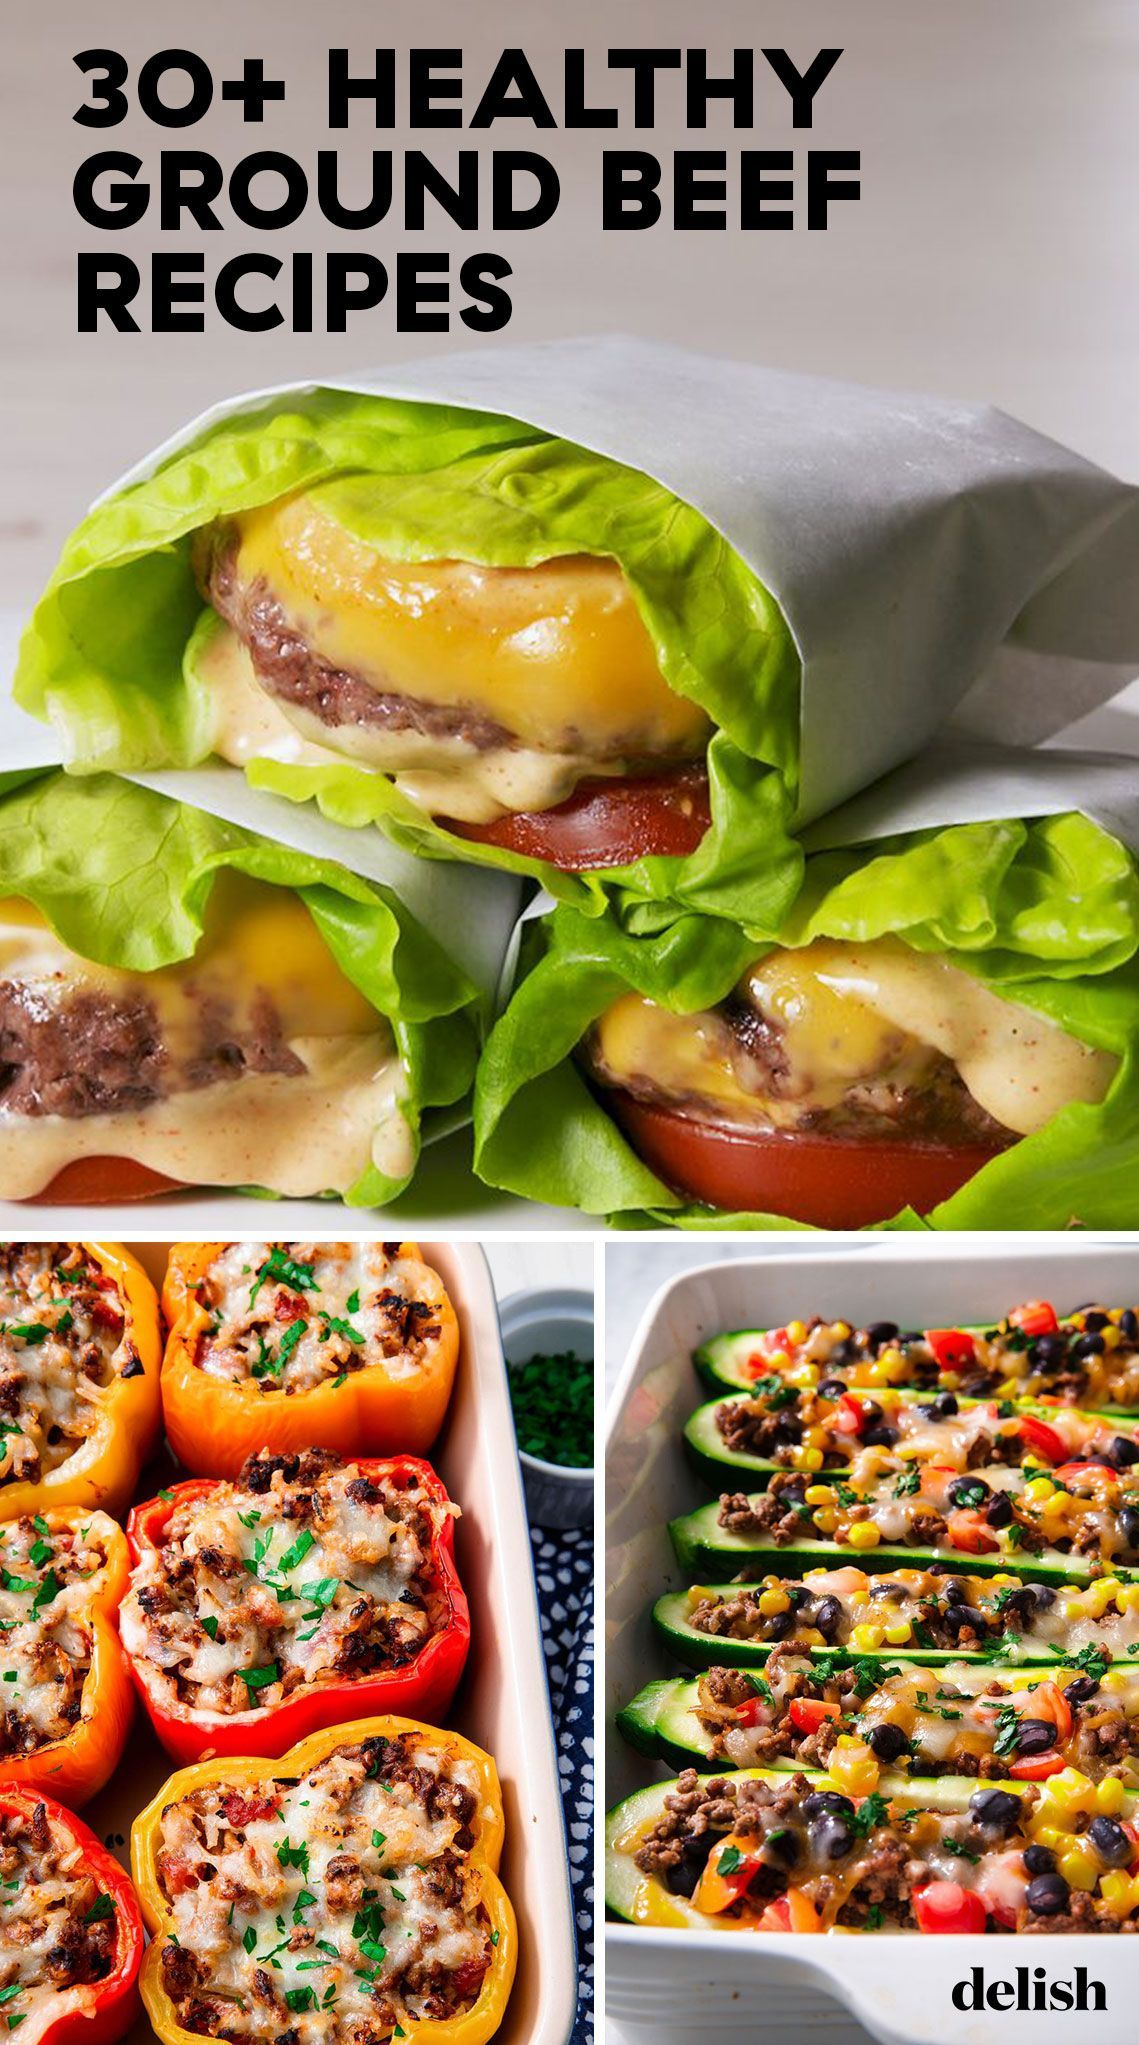 Easy Easy Recipes With Ground Beef Healthy Ground Beef Recipes Healthy Healthy Beef Recipes Healthy Ground Beef